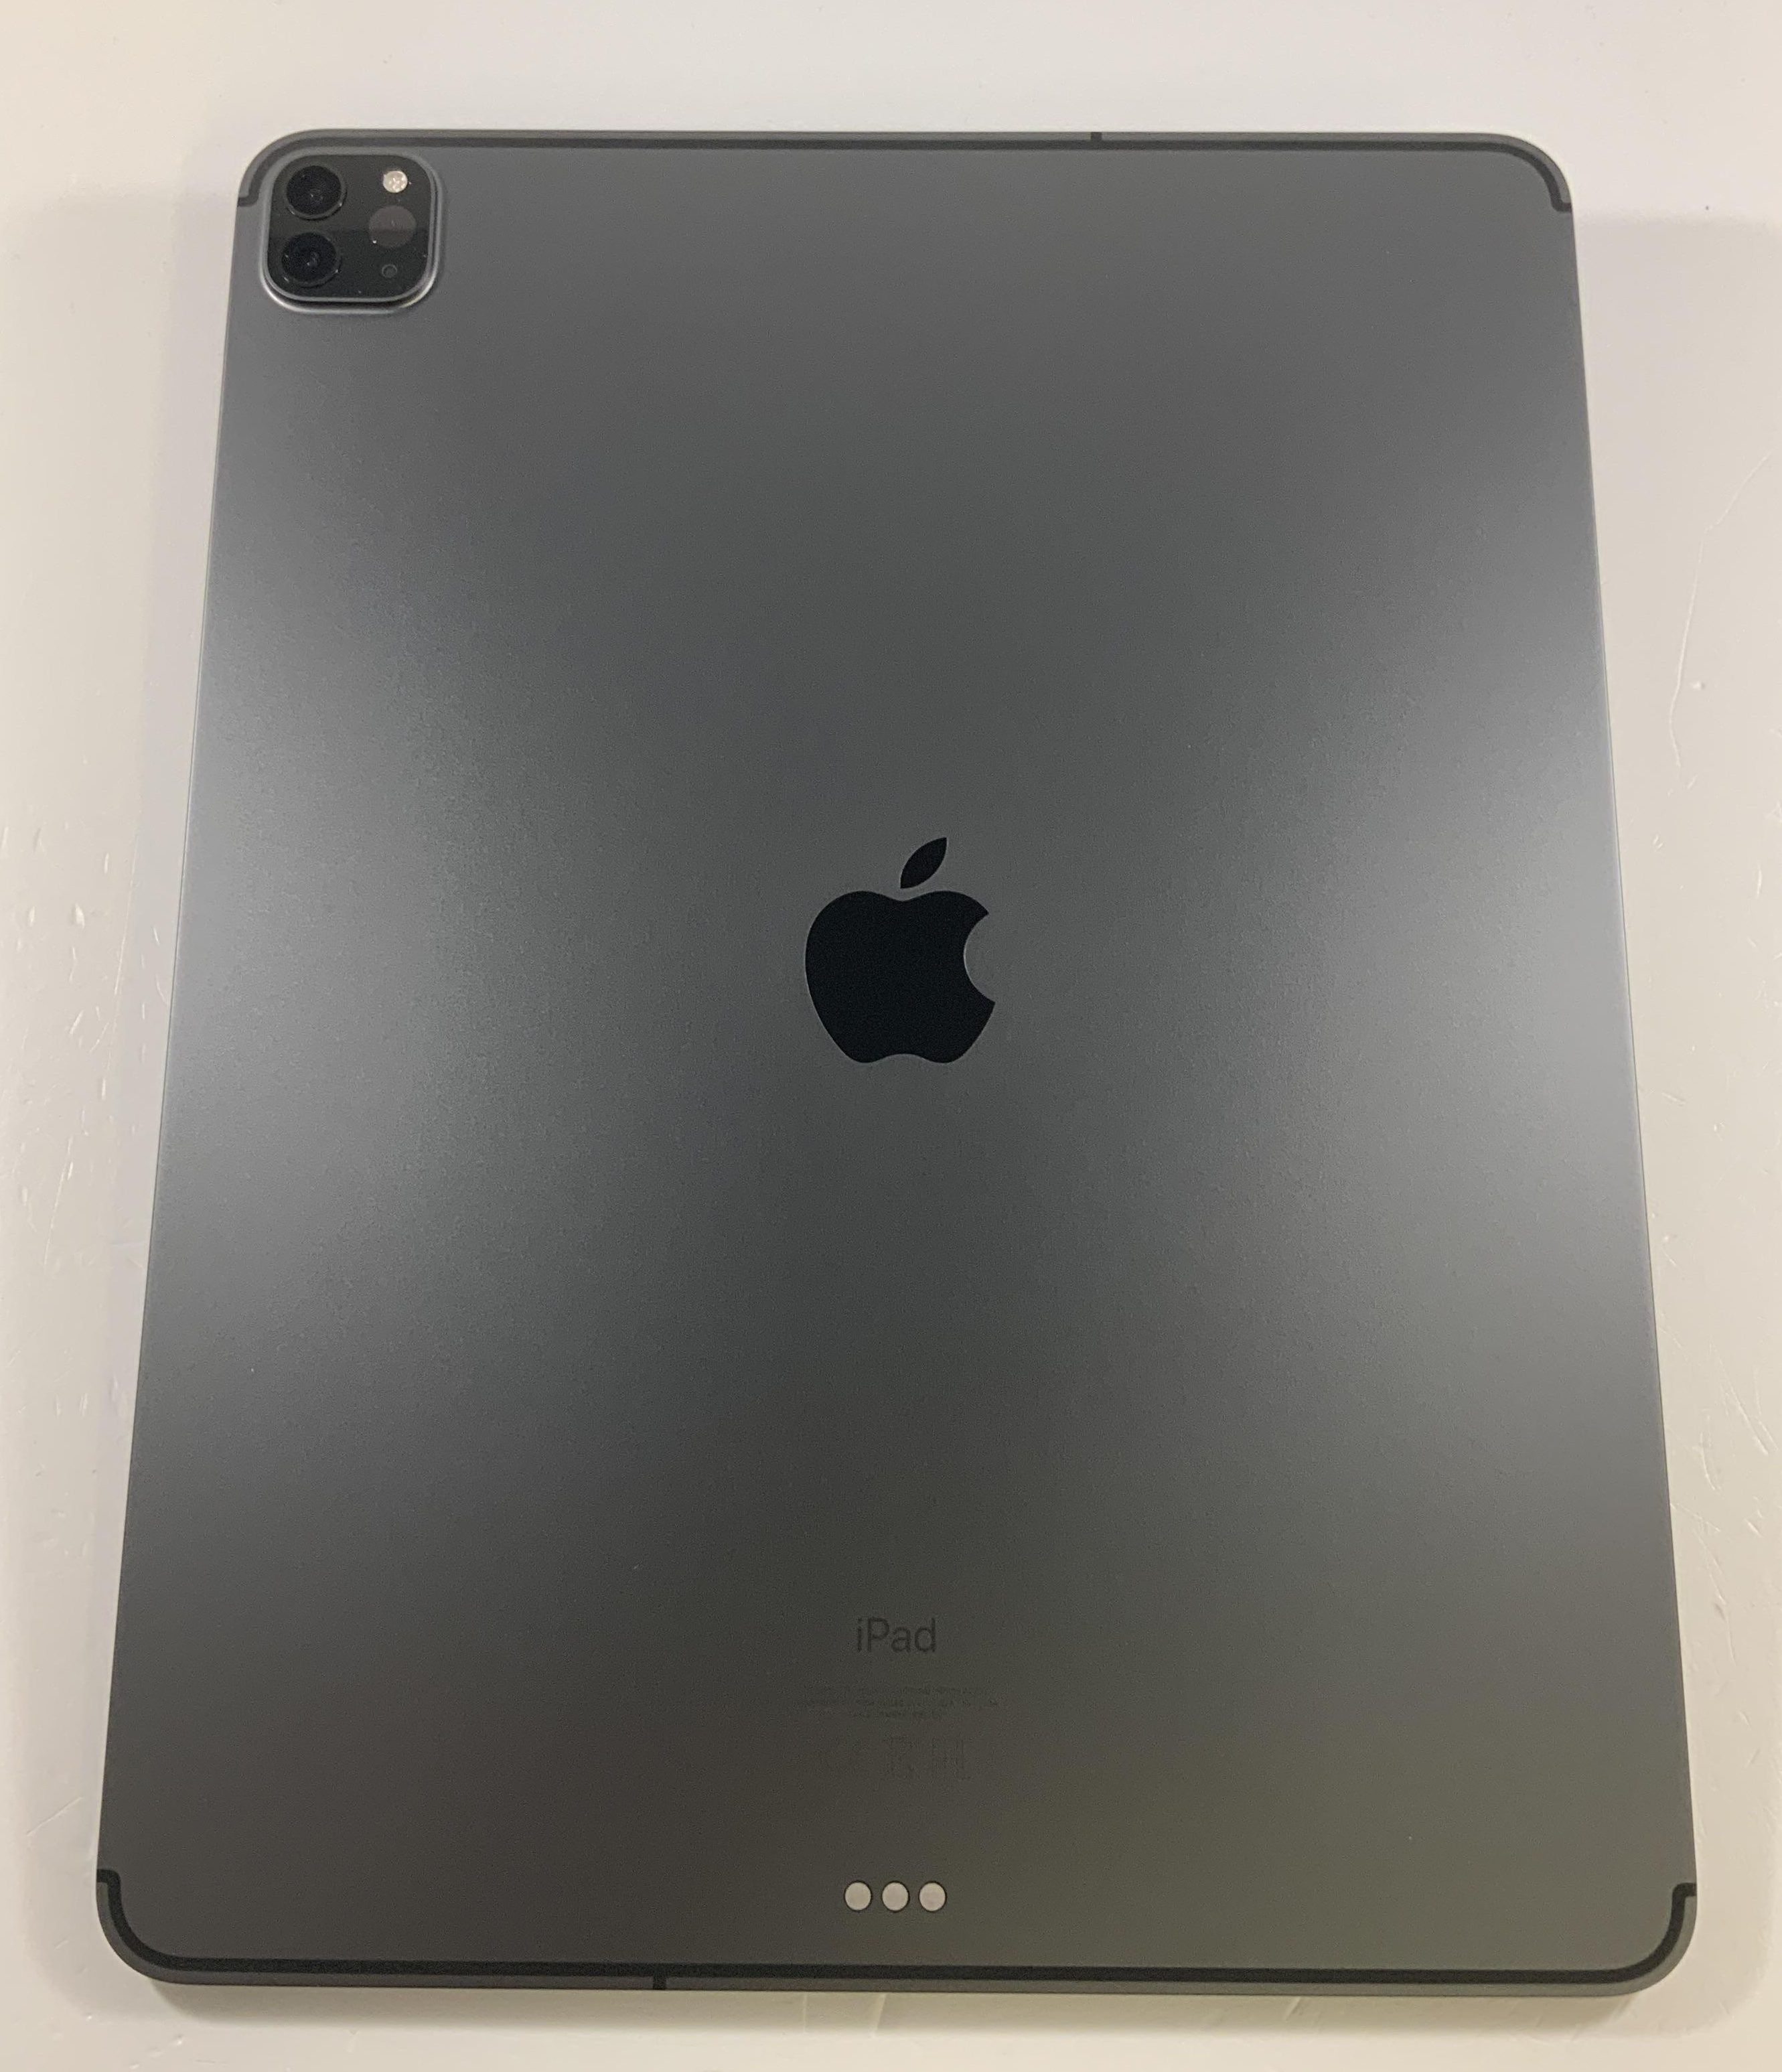 "iPad Pro 12.9"" Wi-Fi + Cellular (4th Gen) 512GB, 512GB, Space Gray, imagen 2"